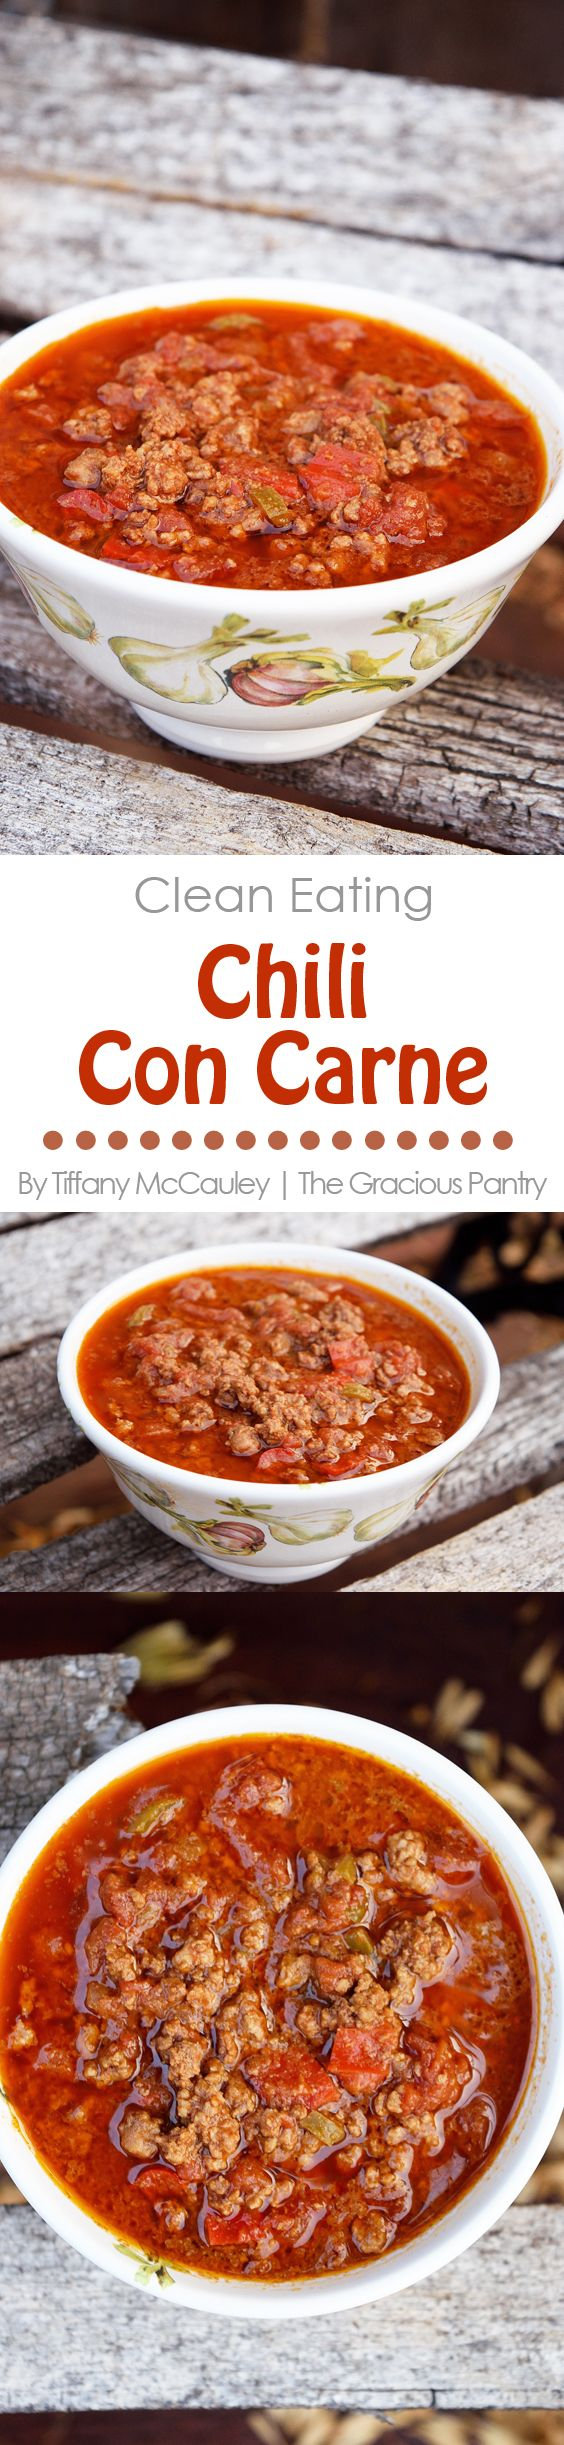 Clean Eating Recipes | Chili Con Carne Recipe | Healthy Chili | Dinner Ideas ~ https://www.thegraciouspantry.com